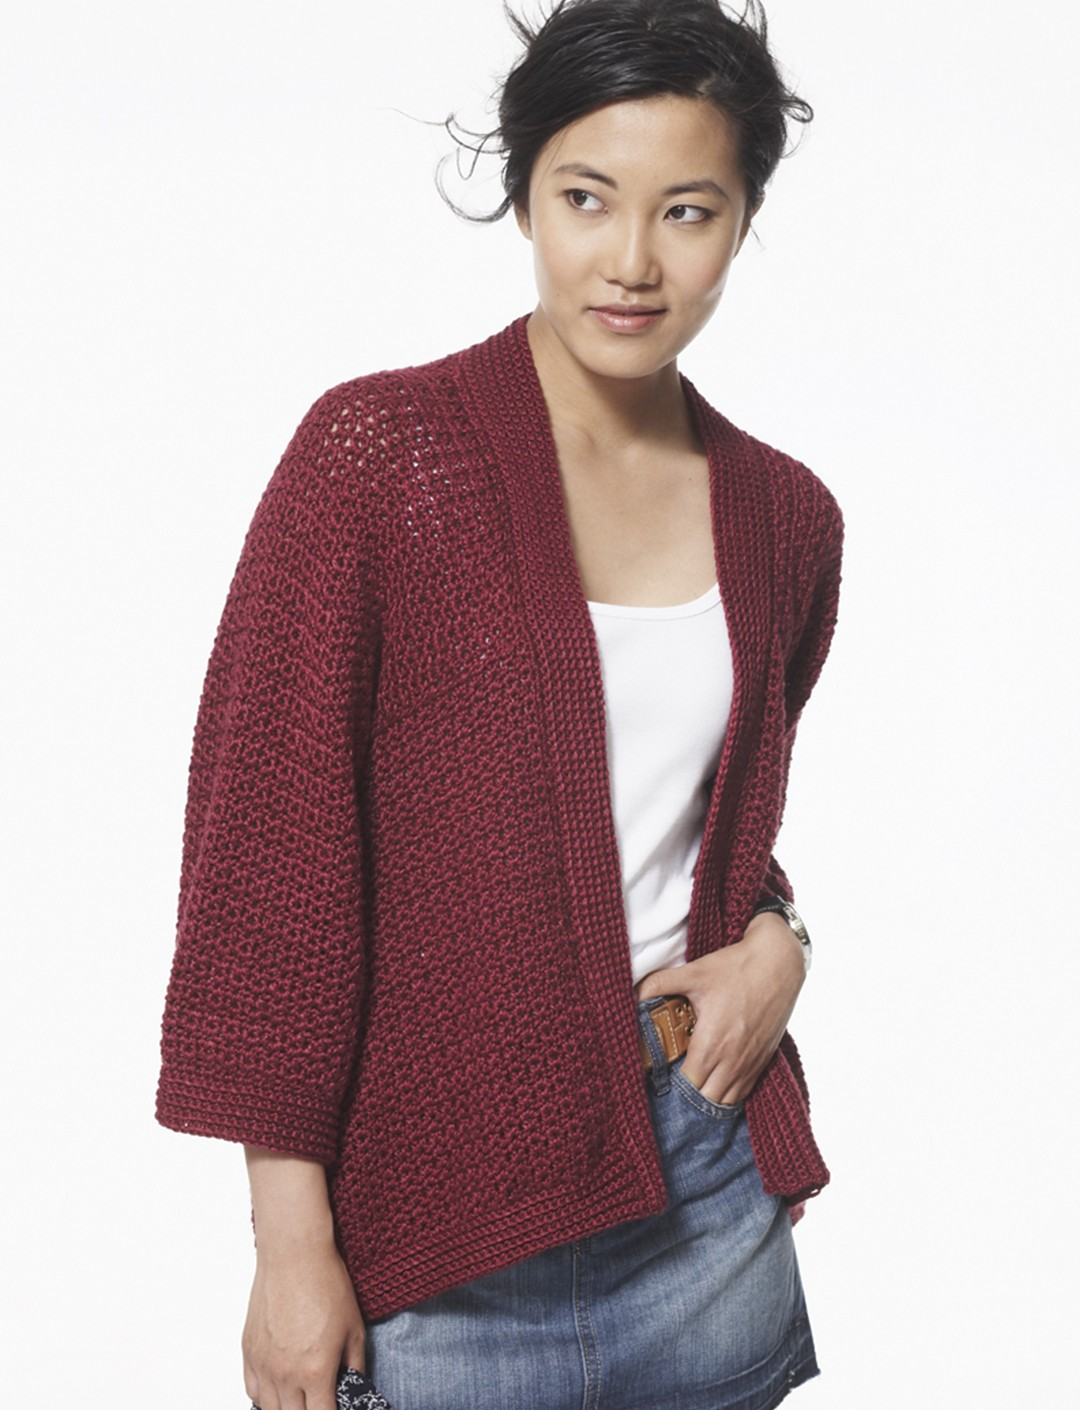 Knitting Pattern For Kimono Cardigan : Patons Soft Drape Kimono Jacket, Crochet Pattern Yarnspirations